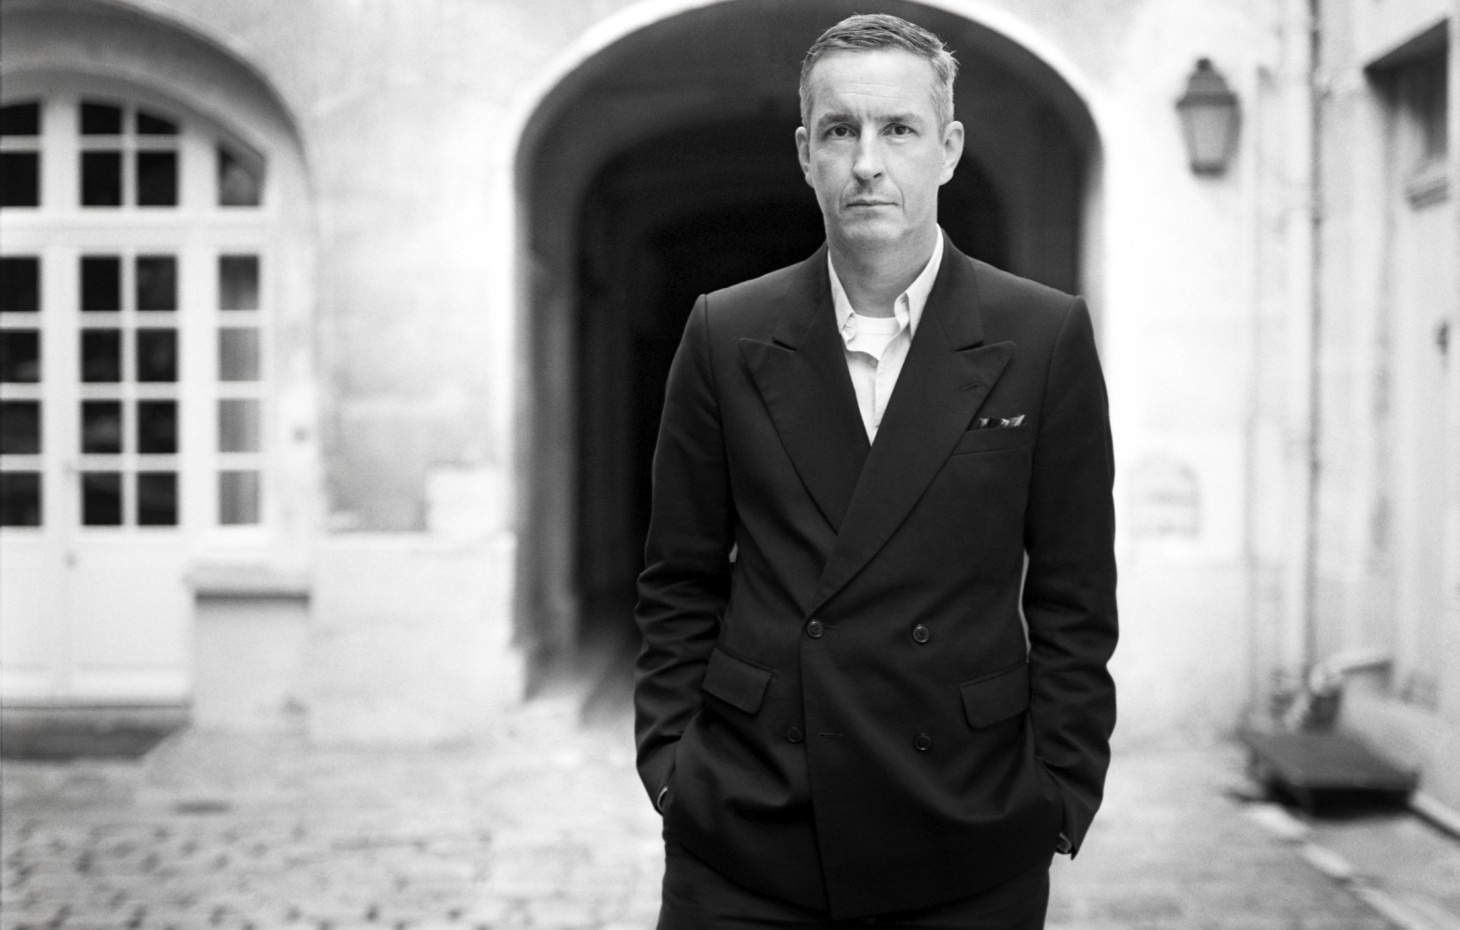 Dries Van Noten at the New Yorker Festival - fashion, events - StyleZeitgeist, New Yorker Festival, New Yorker, Fashion, Events, dries van noten, Belgian Fashion